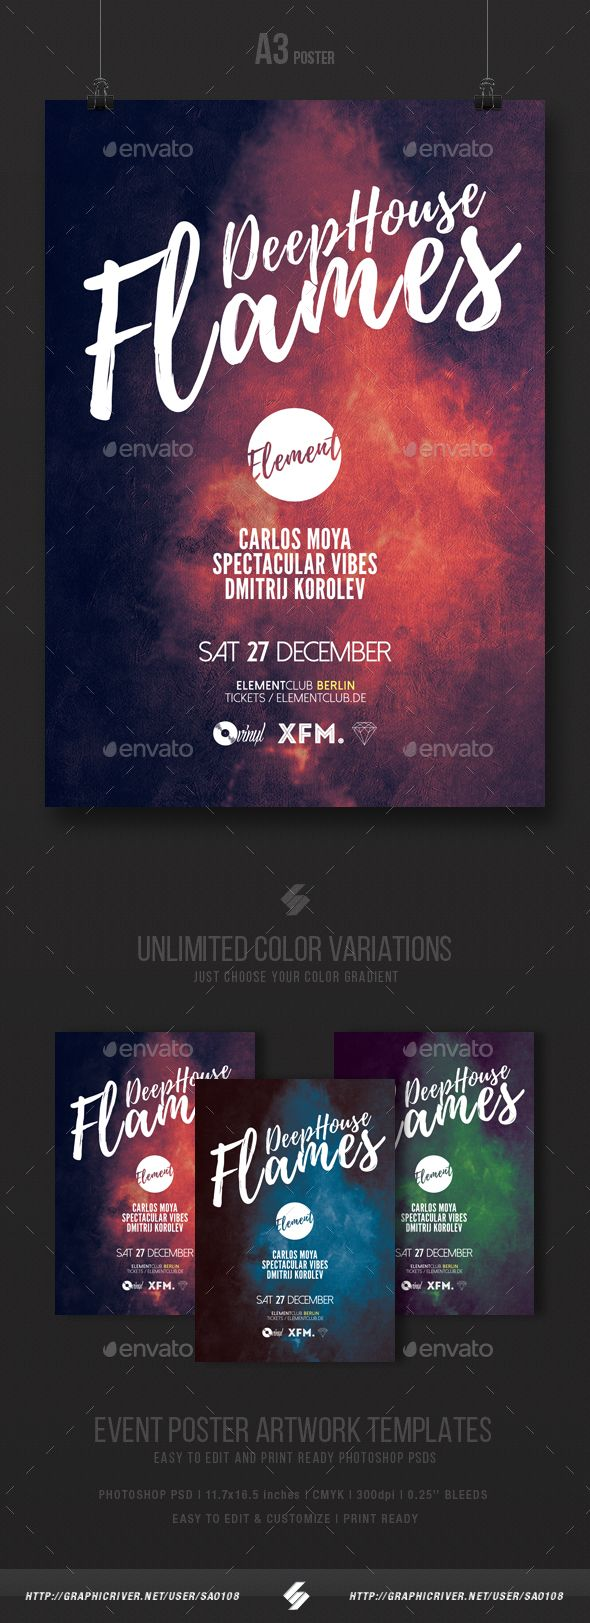 Poster design template psd - Deep House Flames Party Flyer Poster Template A3